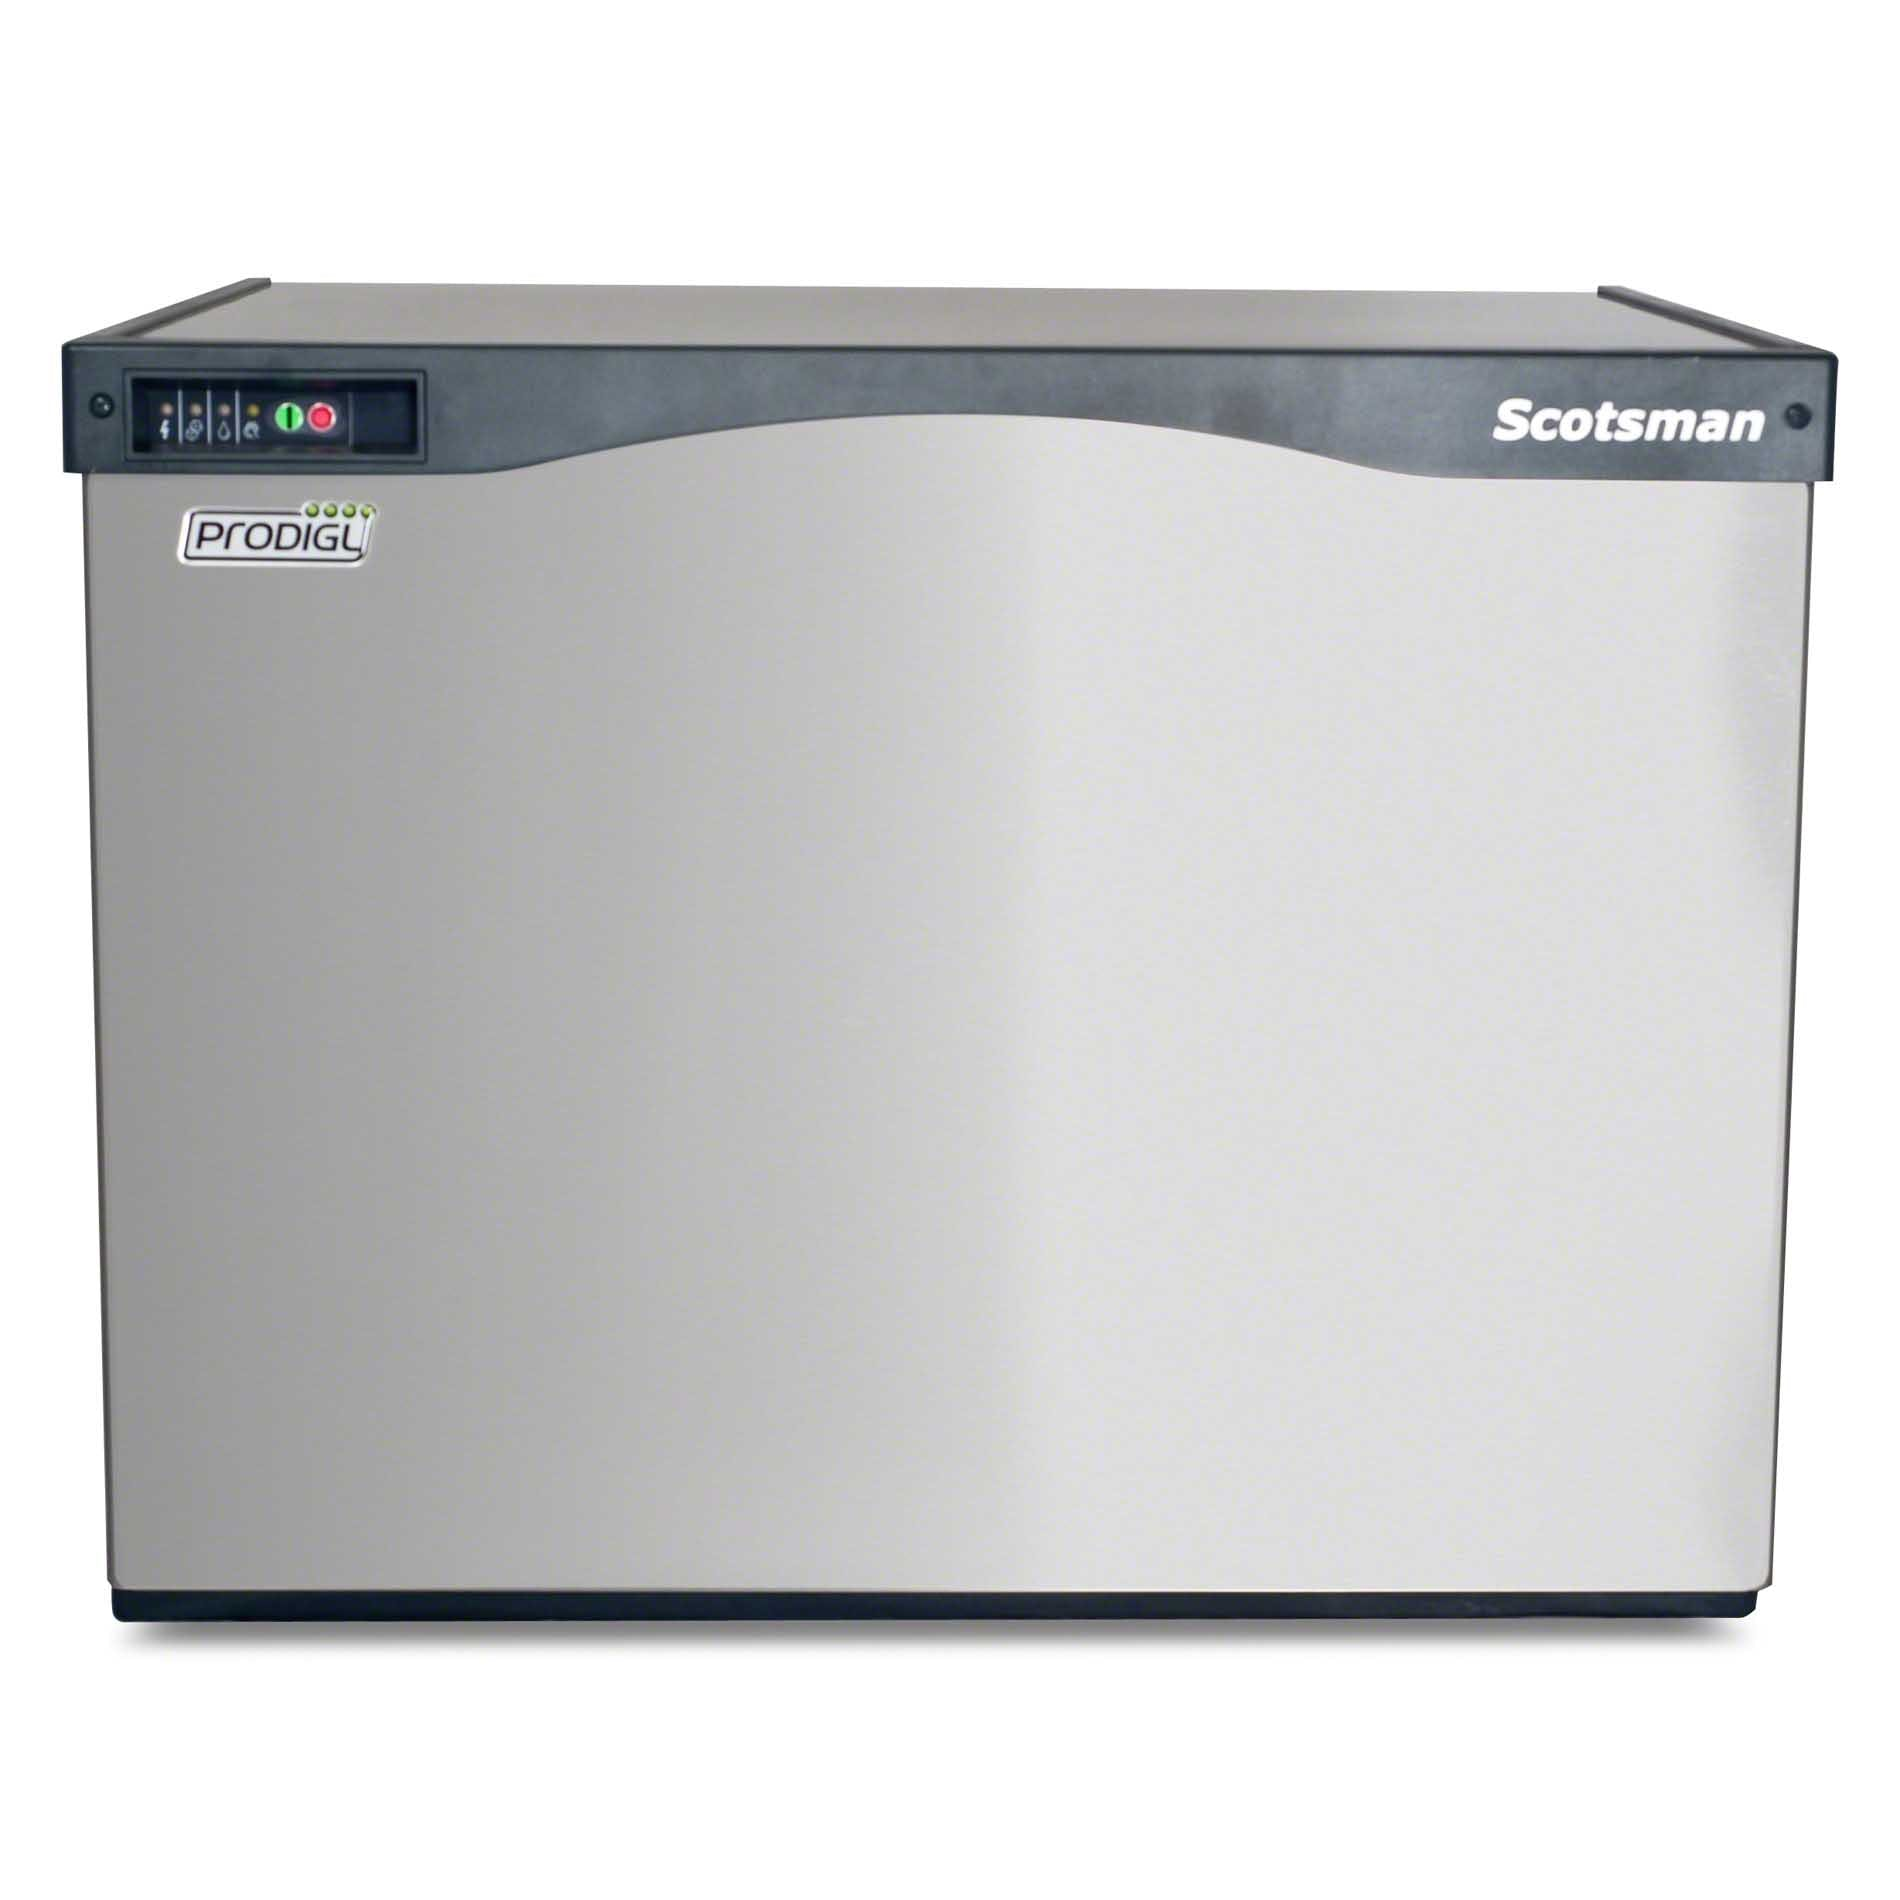 Scotsman - C0330MA-32A 381 lb Full Size Cube Ice Machine - Prodigy Series - sold by Food Service Warehouse